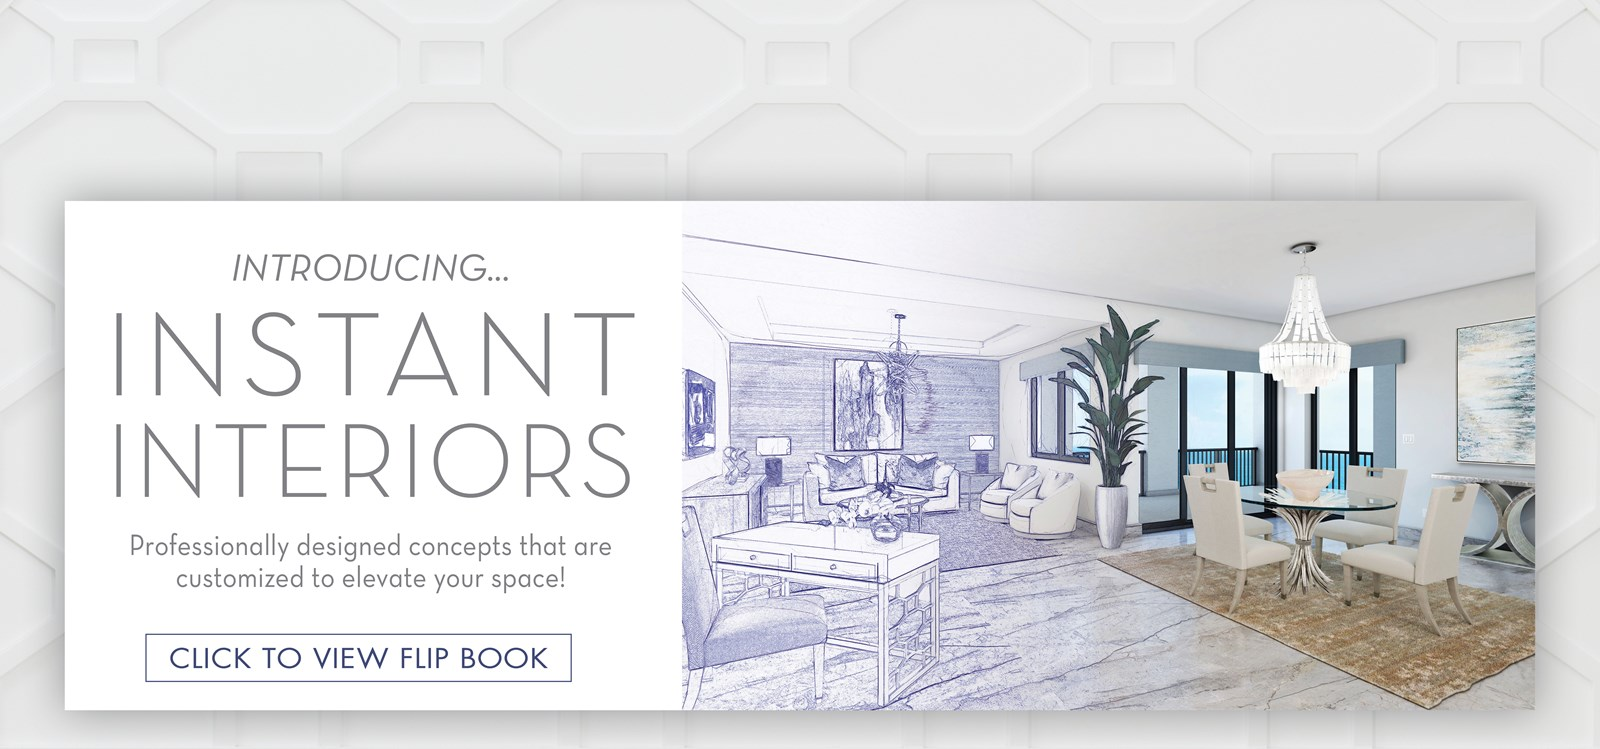 Image of the Cheswick Collection Living Room turning from sketch into rendering image. Text: Introducing... Instant Interiors. Professionally designed concepts that are customized to elevate your space! Click to view Flip Book. Links to Instant Interiors Flip Book.